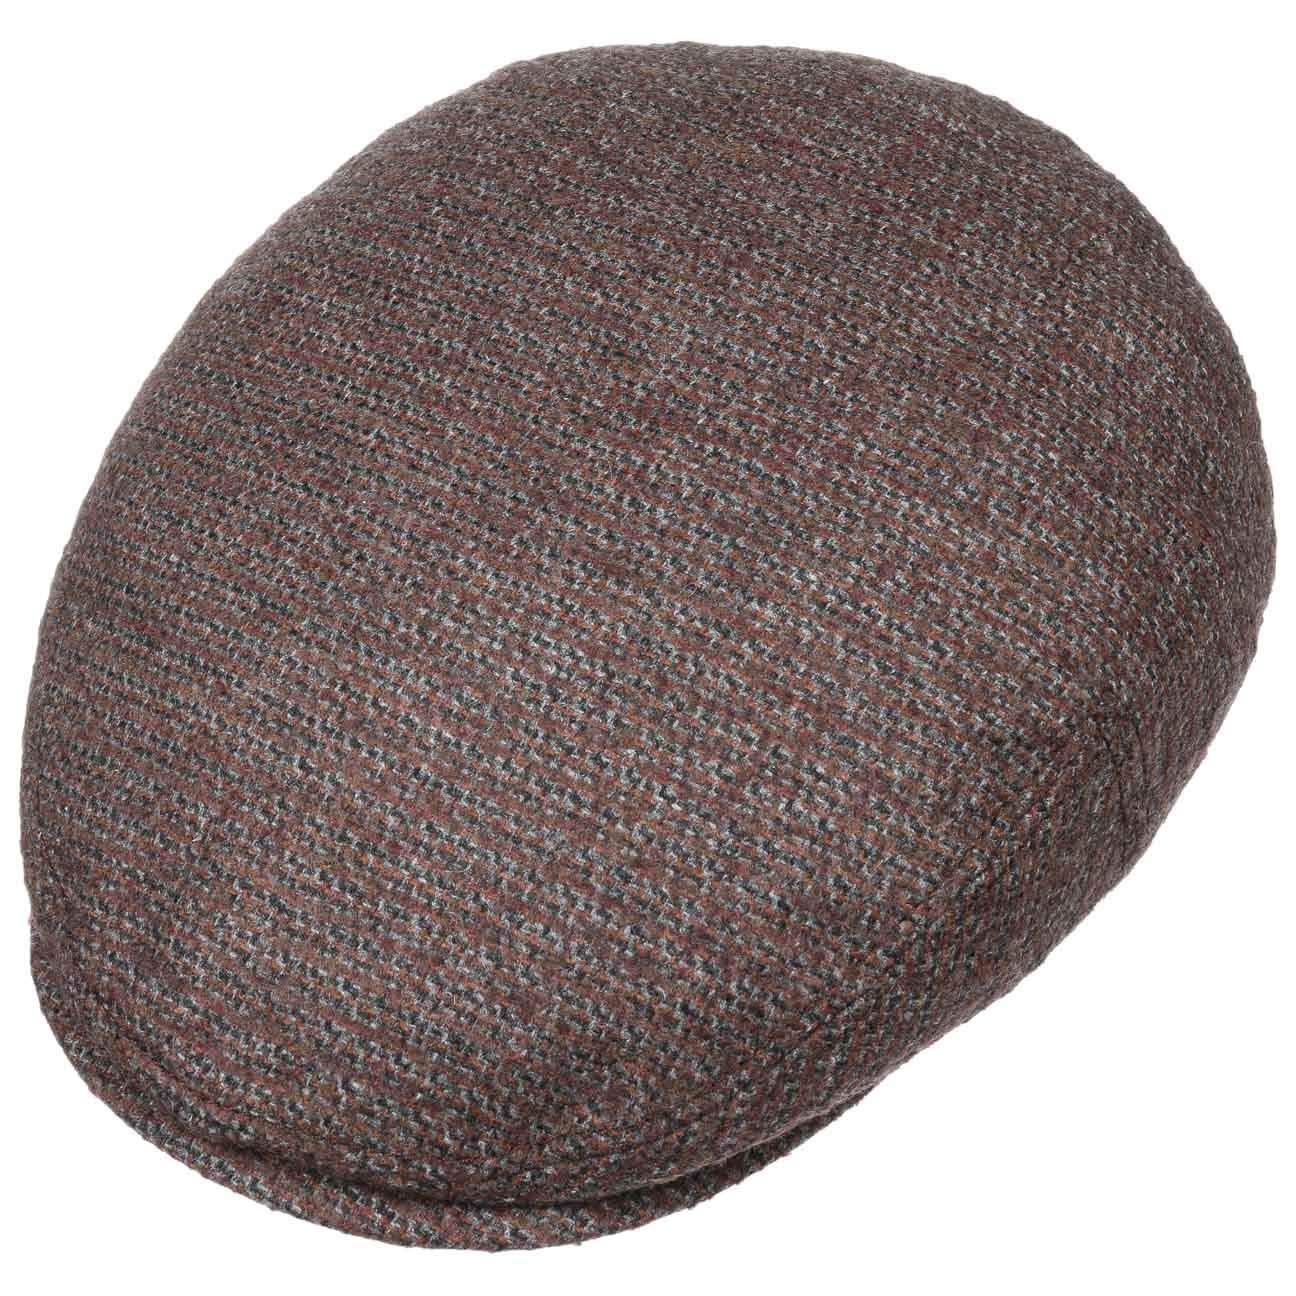 Made in Germany Stetson Kent Cerruti Flat Cap with Cashmere Men